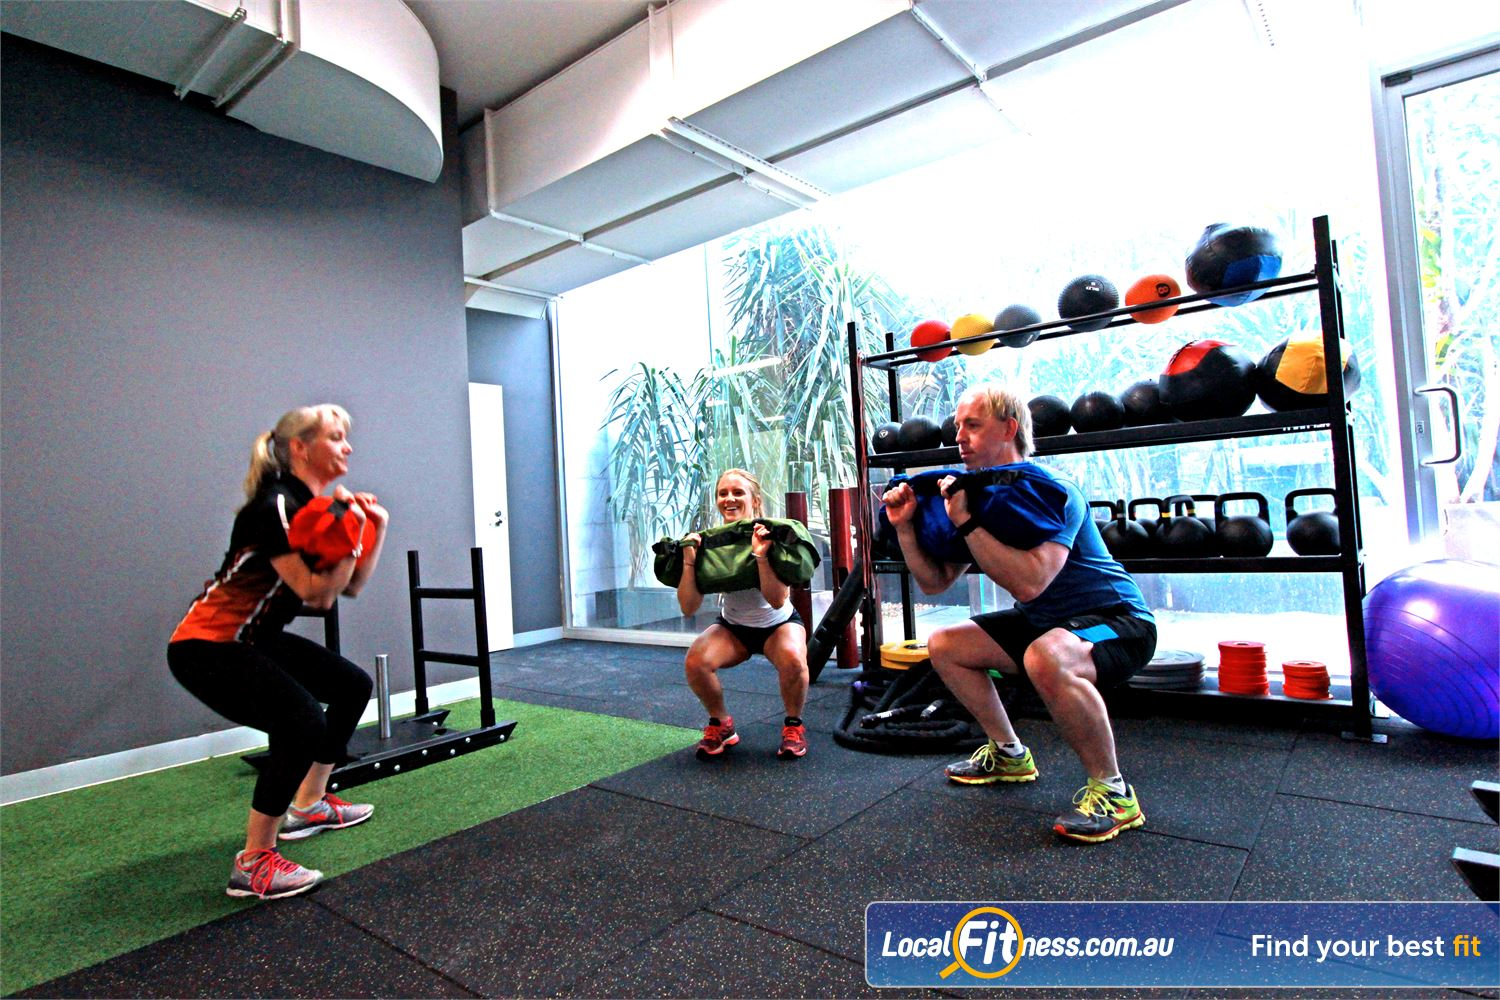 South Pacific Health Clubs Near Parkdale Small group personal training is a great way to get fit together with family or friends.